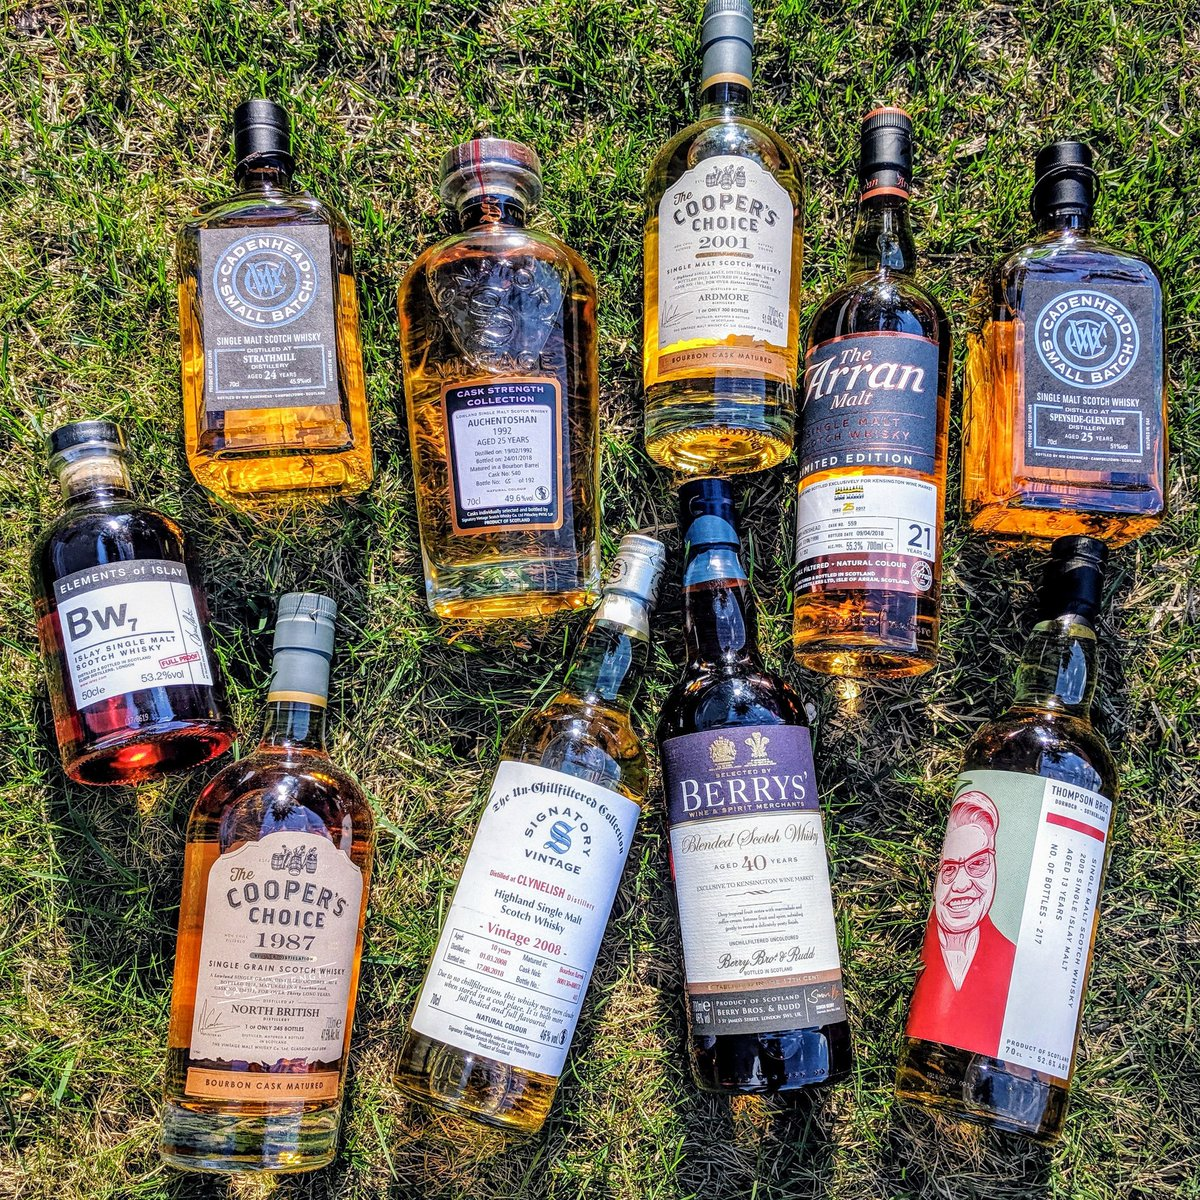 TOP 10 Whisky Deals still available from our extended 27th Birthday Sale, as selected by Evan. Until close today(8PM) and midnight online, we have hundreds of whiskies discounted between 15 & 50%. This is our last sale before the fall! http://www.kensingtonwinemarket.com  #yyc #sale #whisky